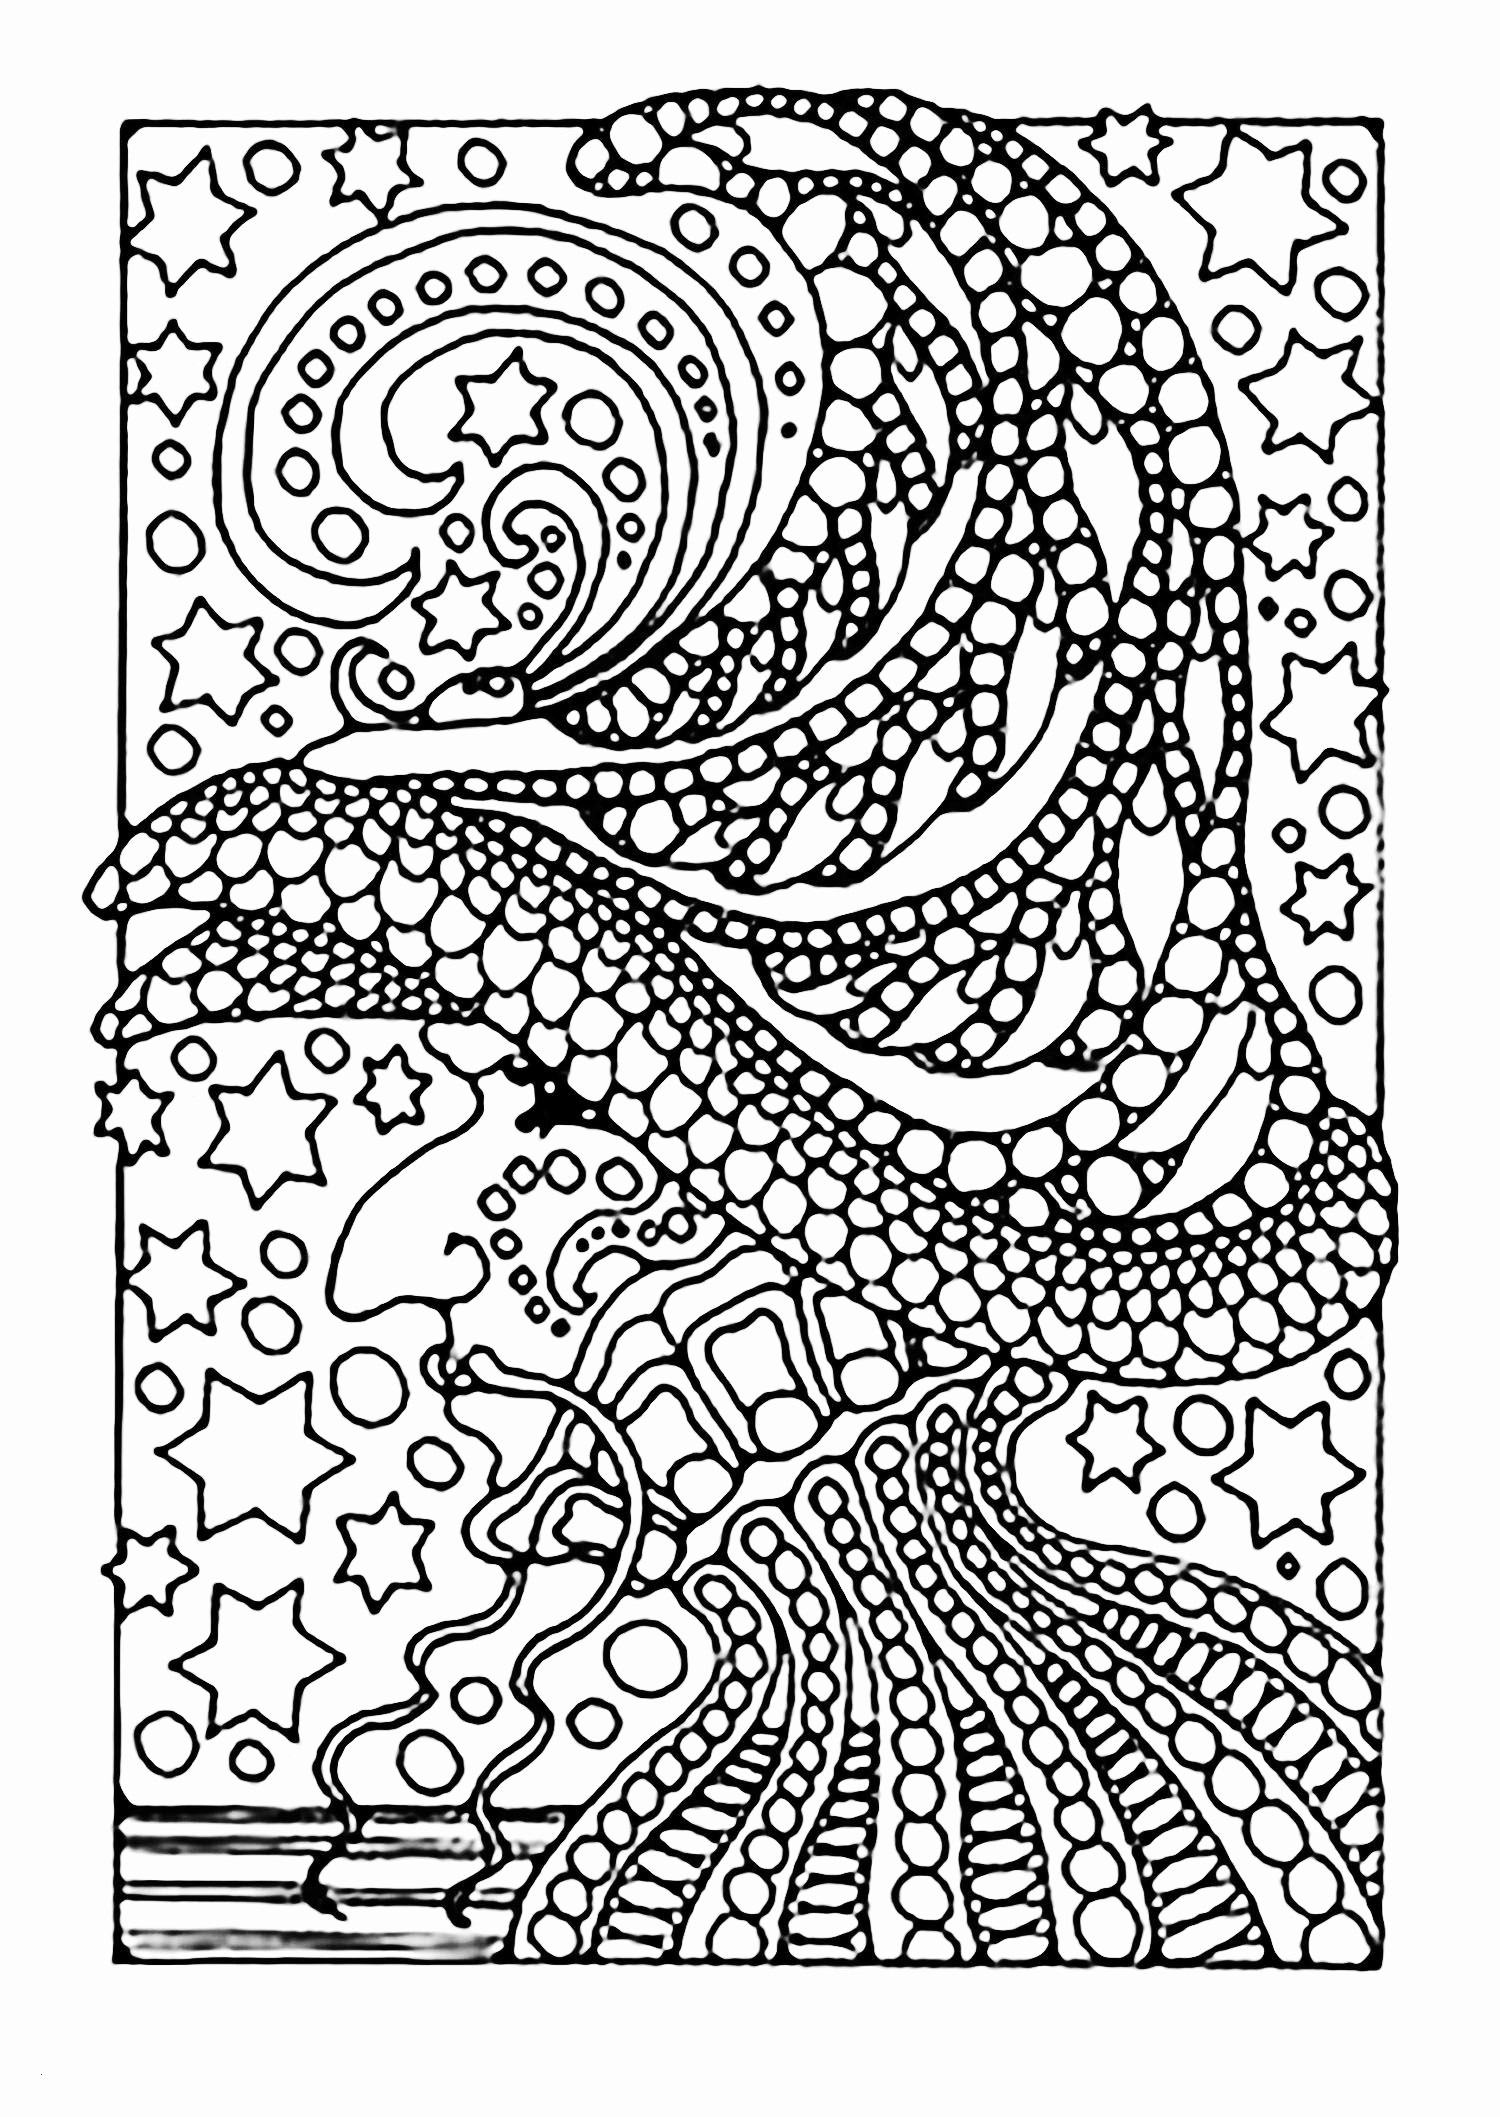 patriotic printable coloring pages Download-Eagle Printable Coloring Pages Eagle Coloring Pages Wonderful Patriotic Printable Coloring Pages 8-k